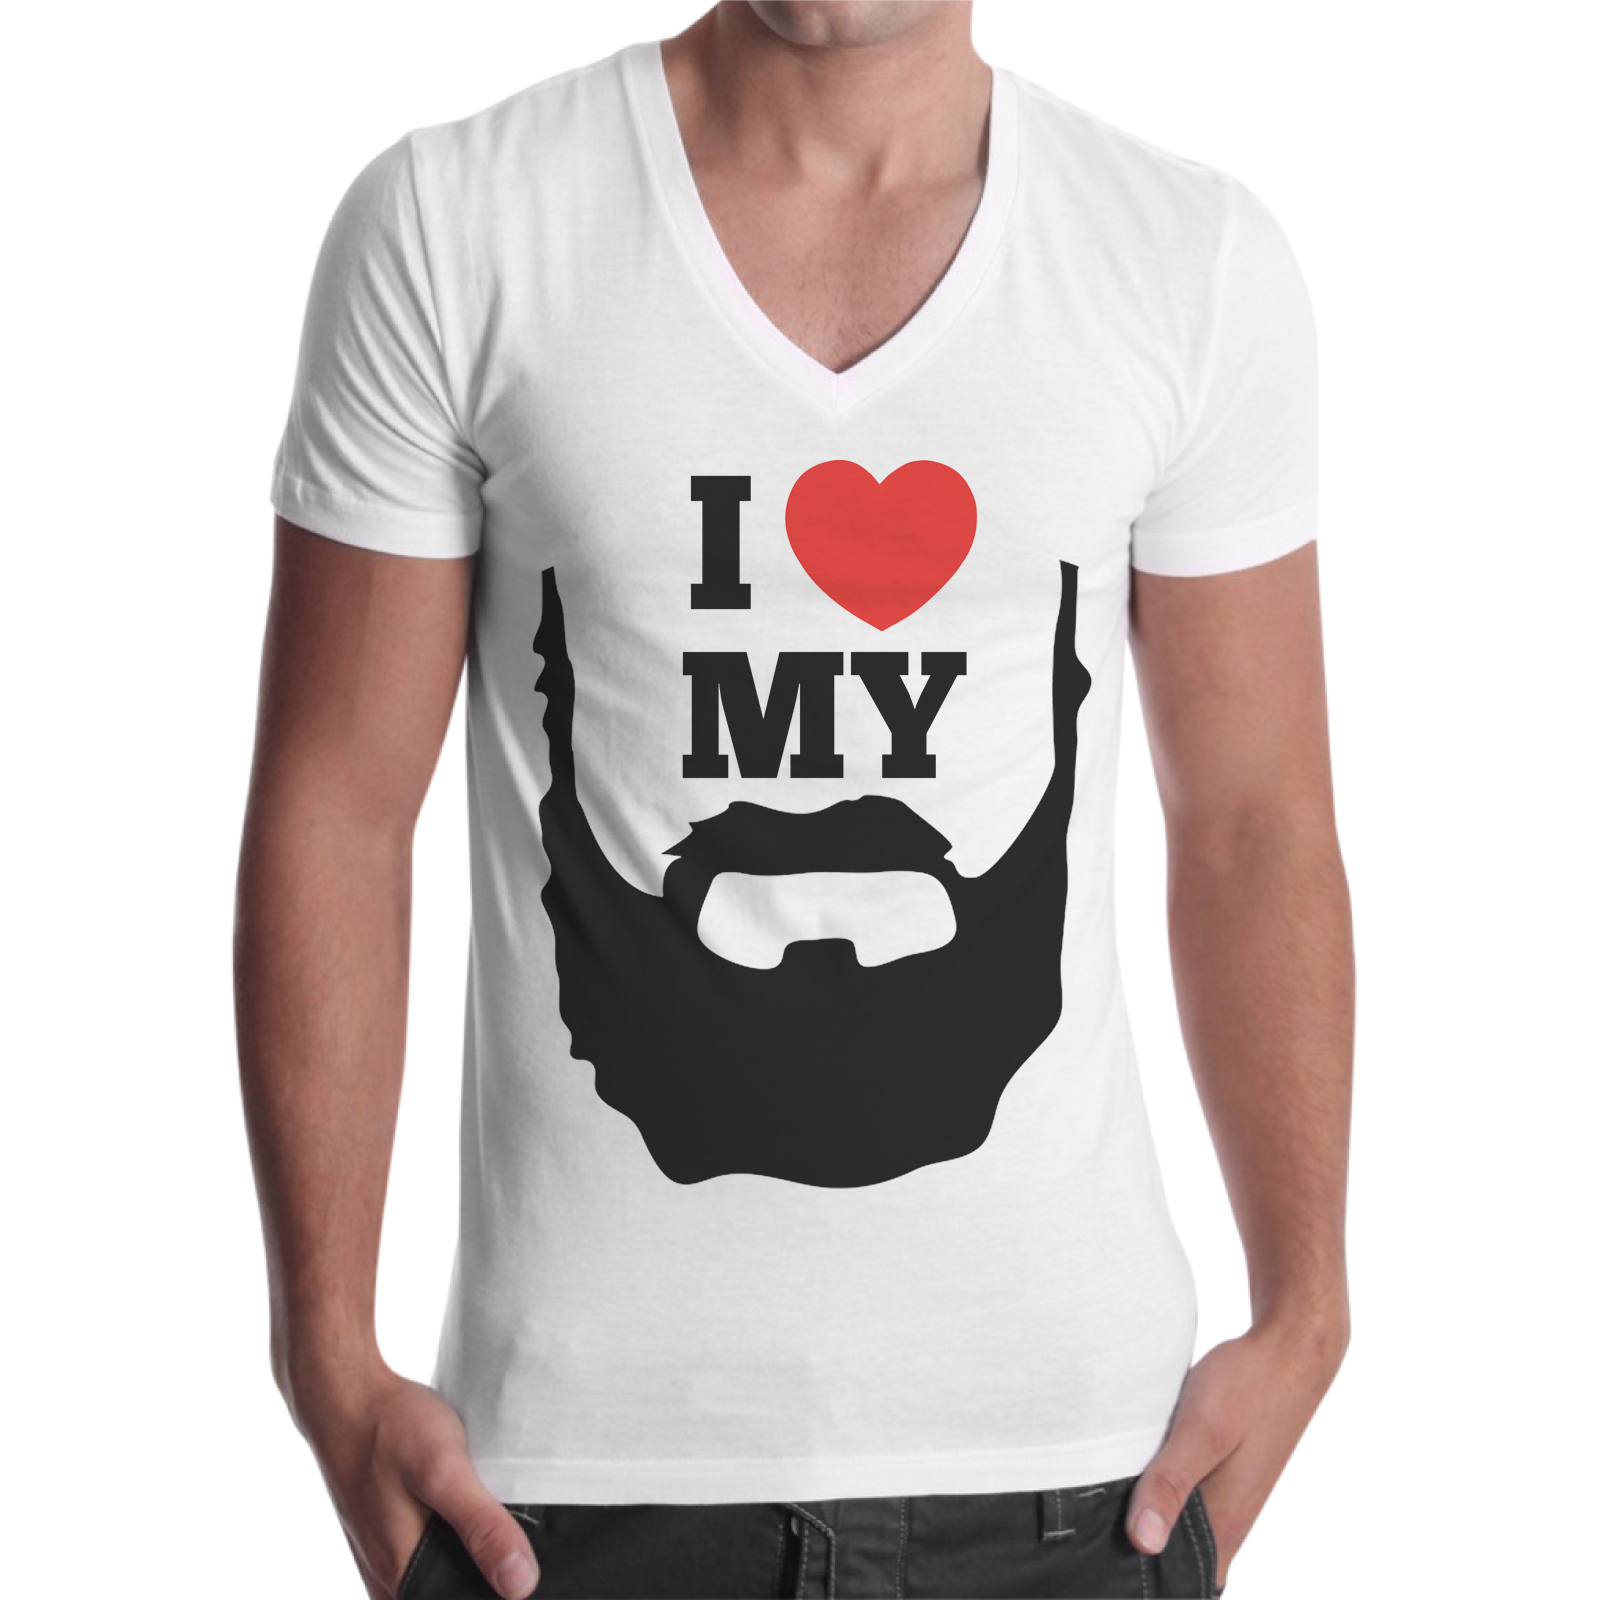 T-Shirt Uomo Scollo V I LOVE MY BEARD 1